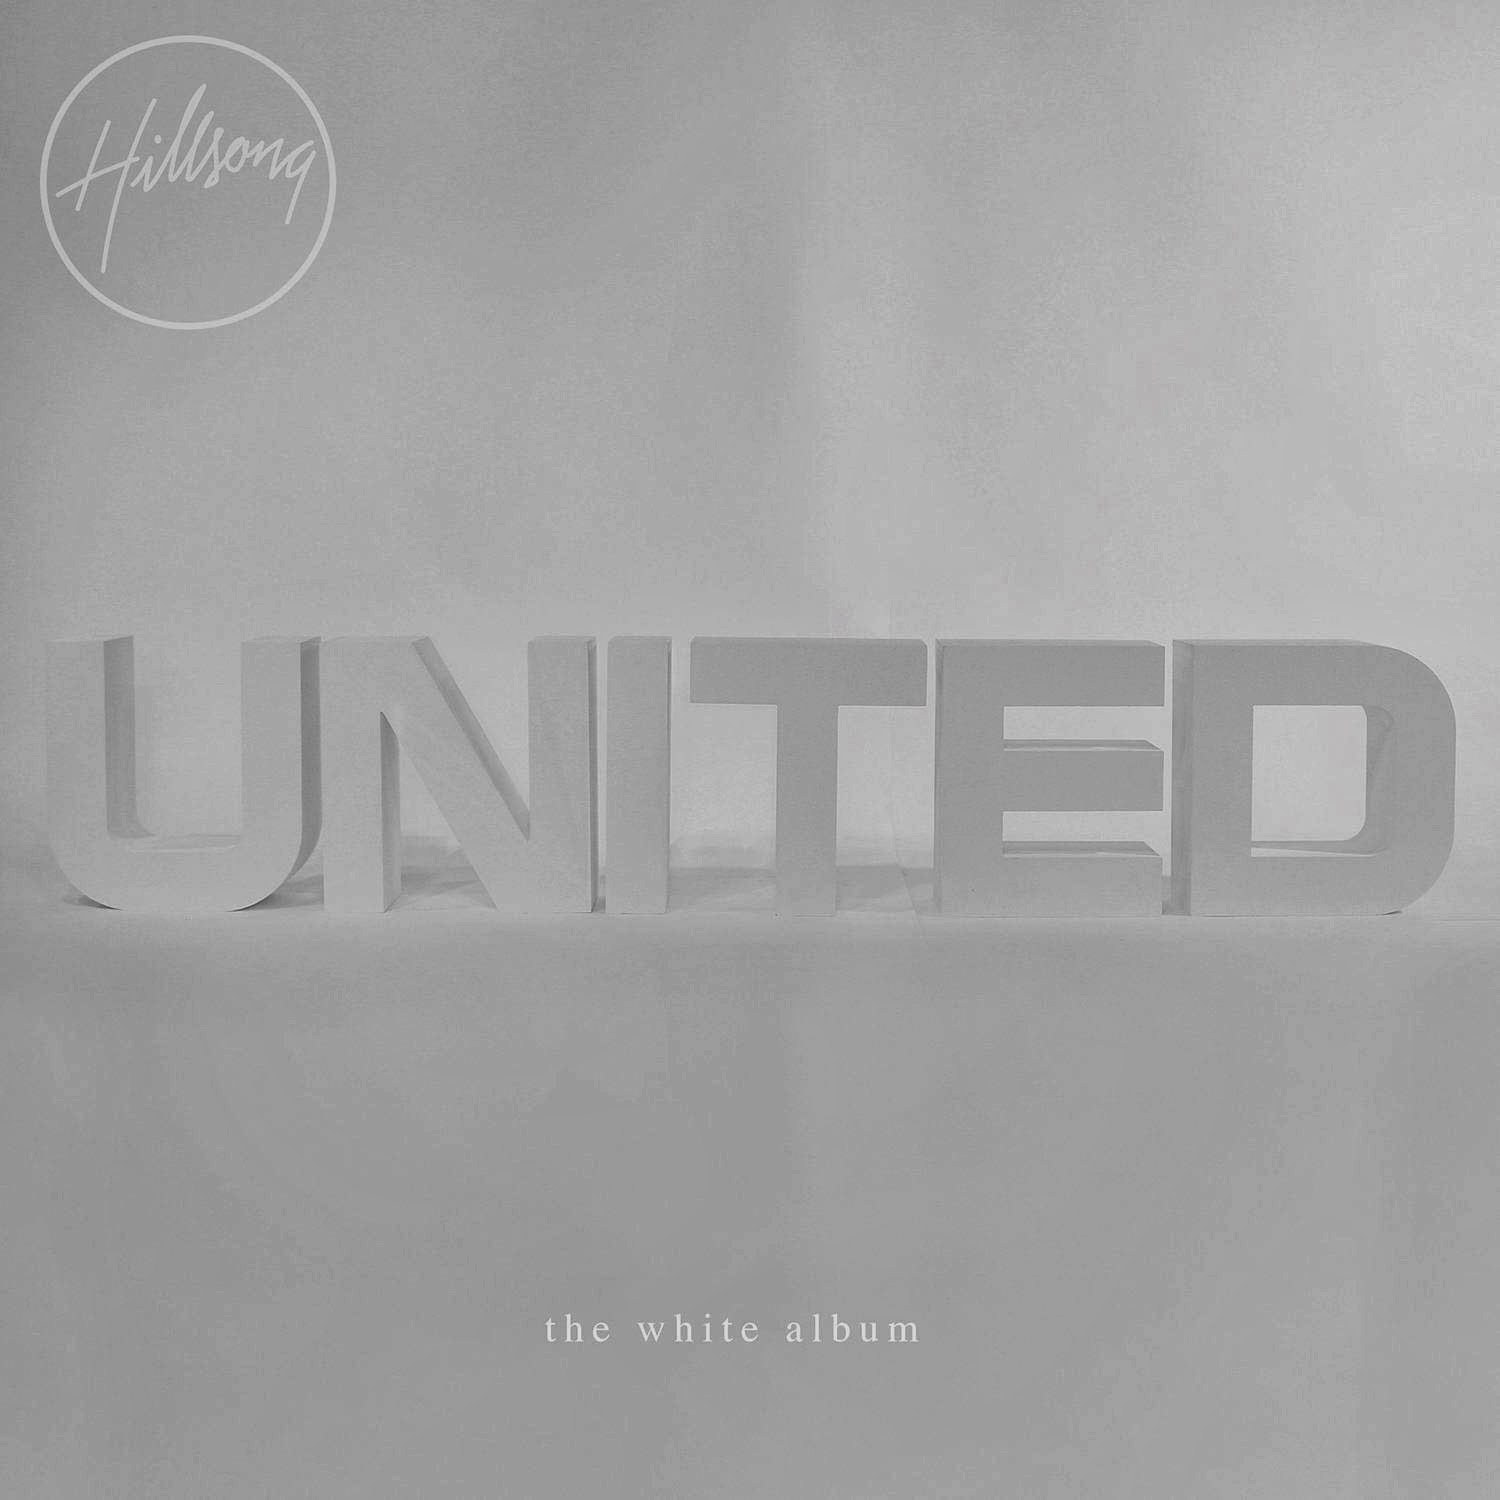 Hillsong United - The White Album (remix project) 2014 English Christian Album Download